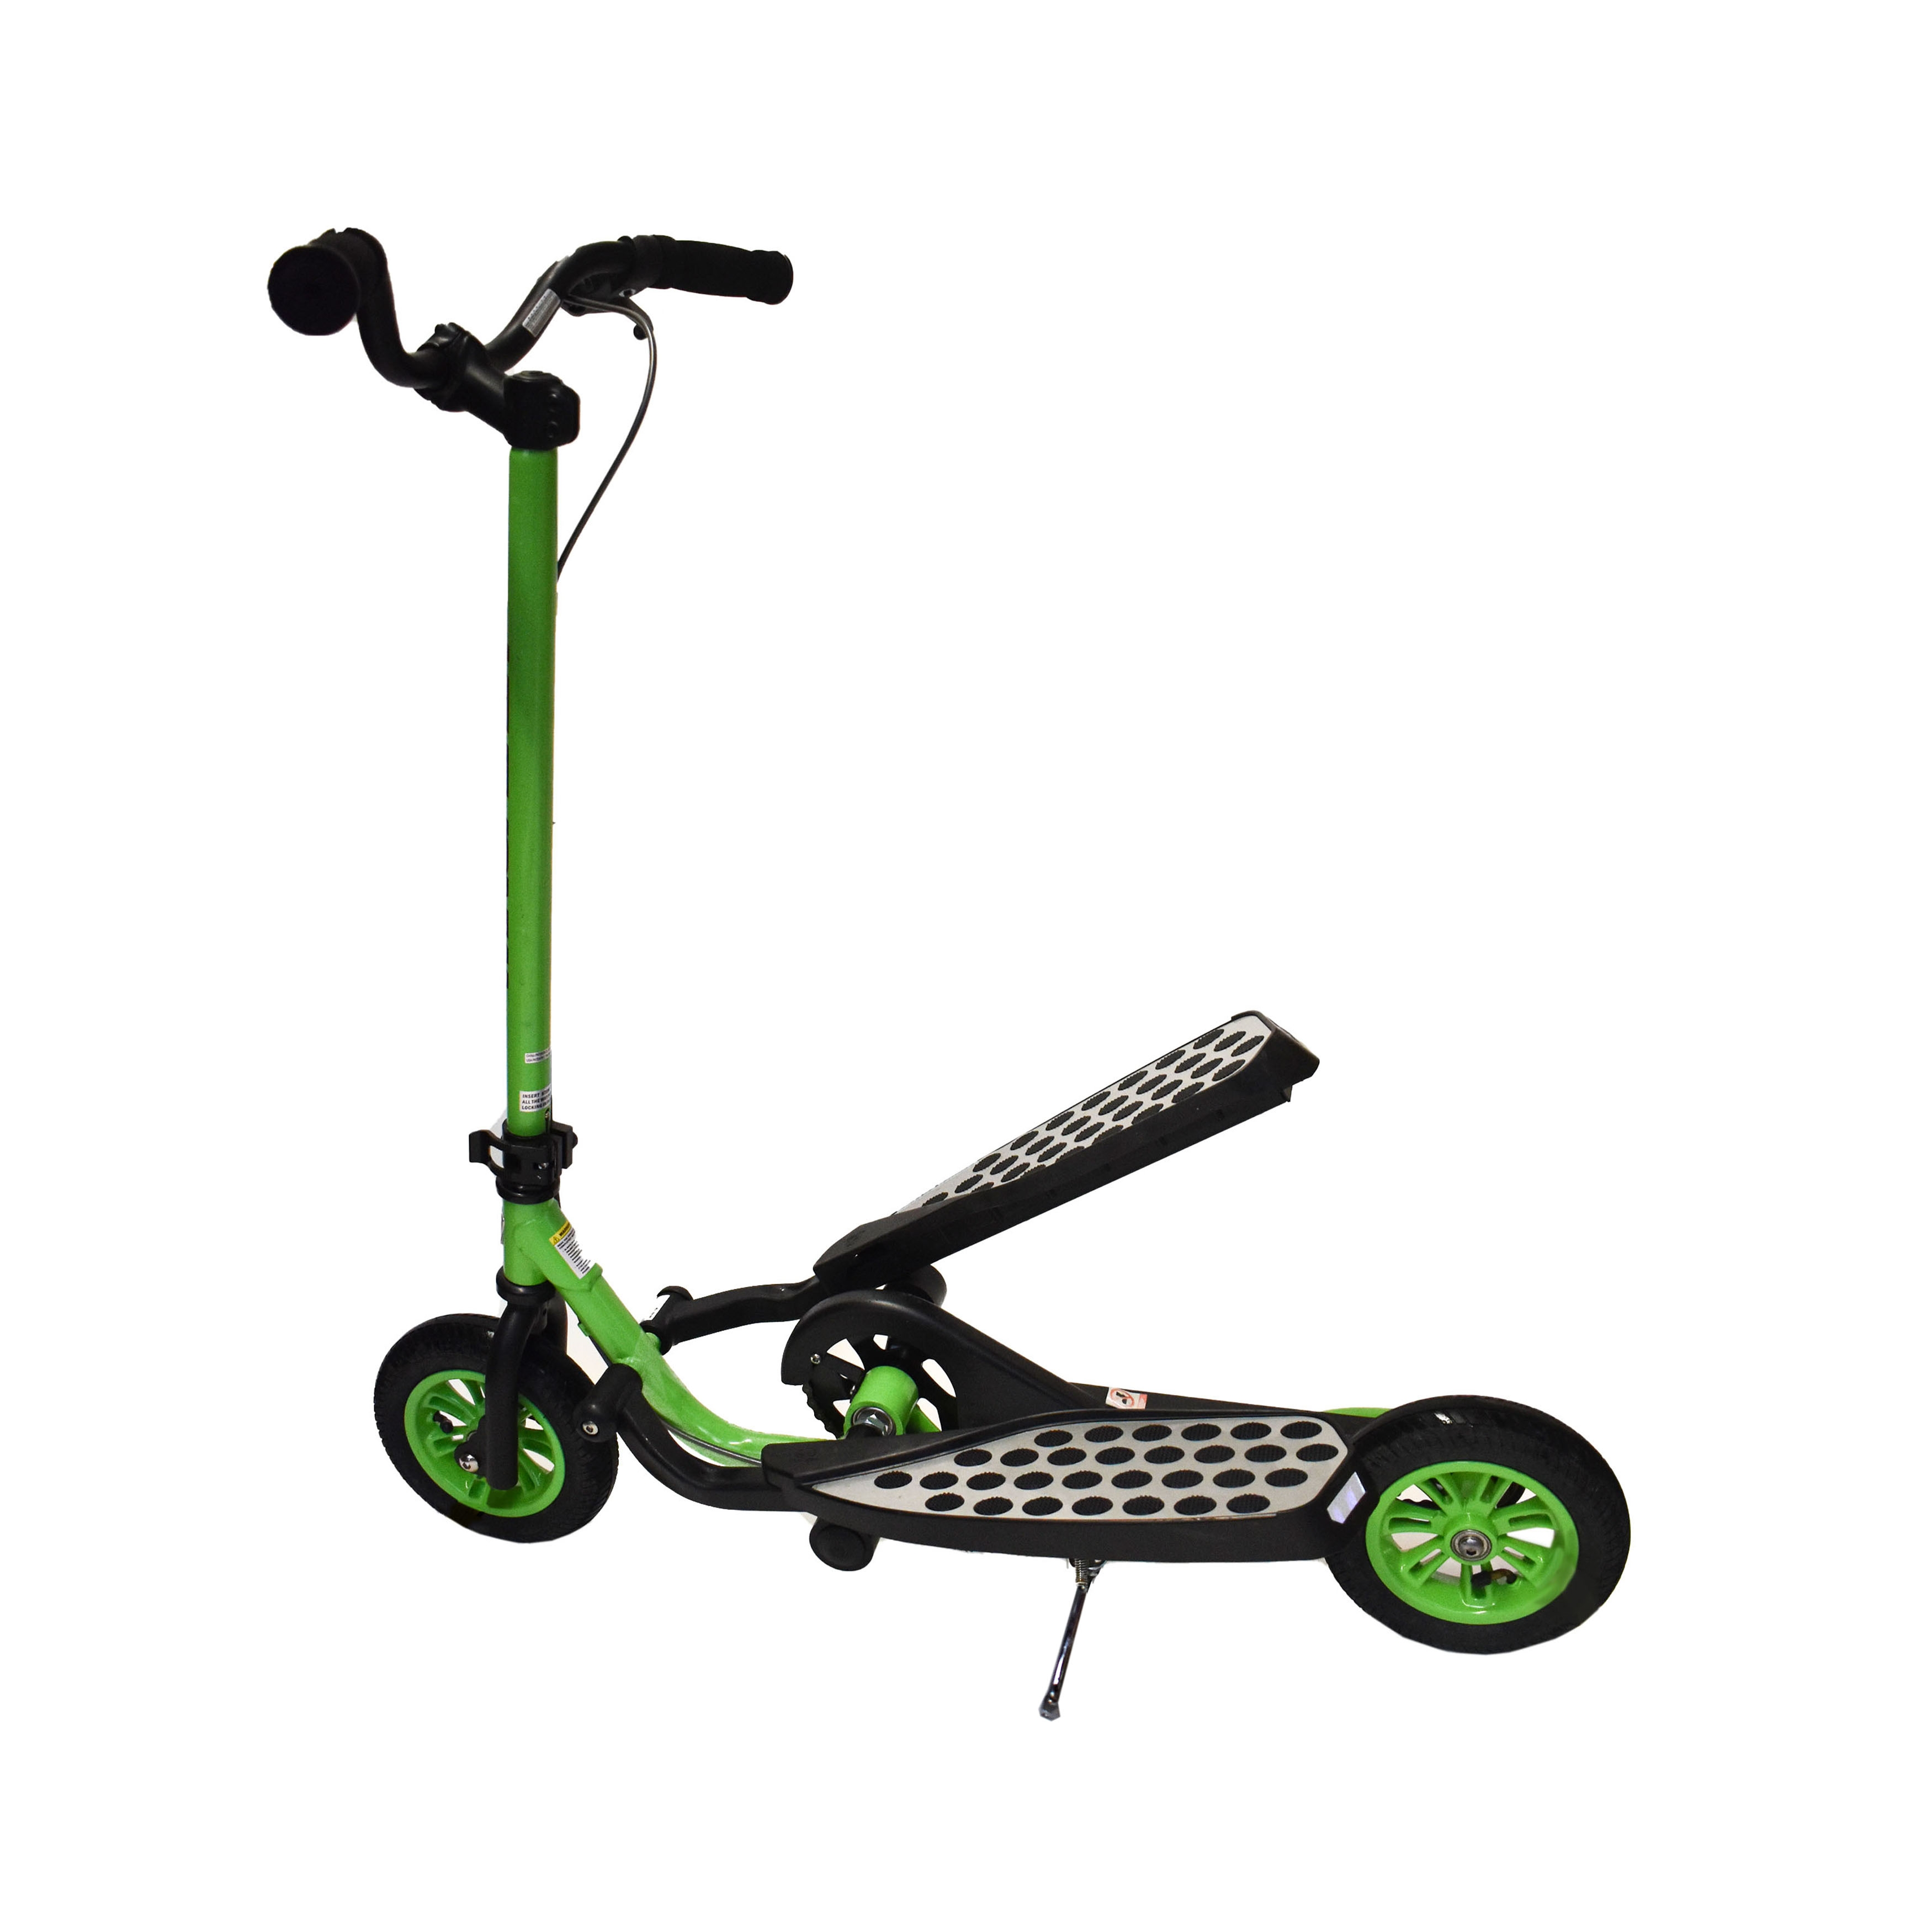 Zike Fly Range Motion Portable Scooter Stepper Bike for Youth - Lime Green